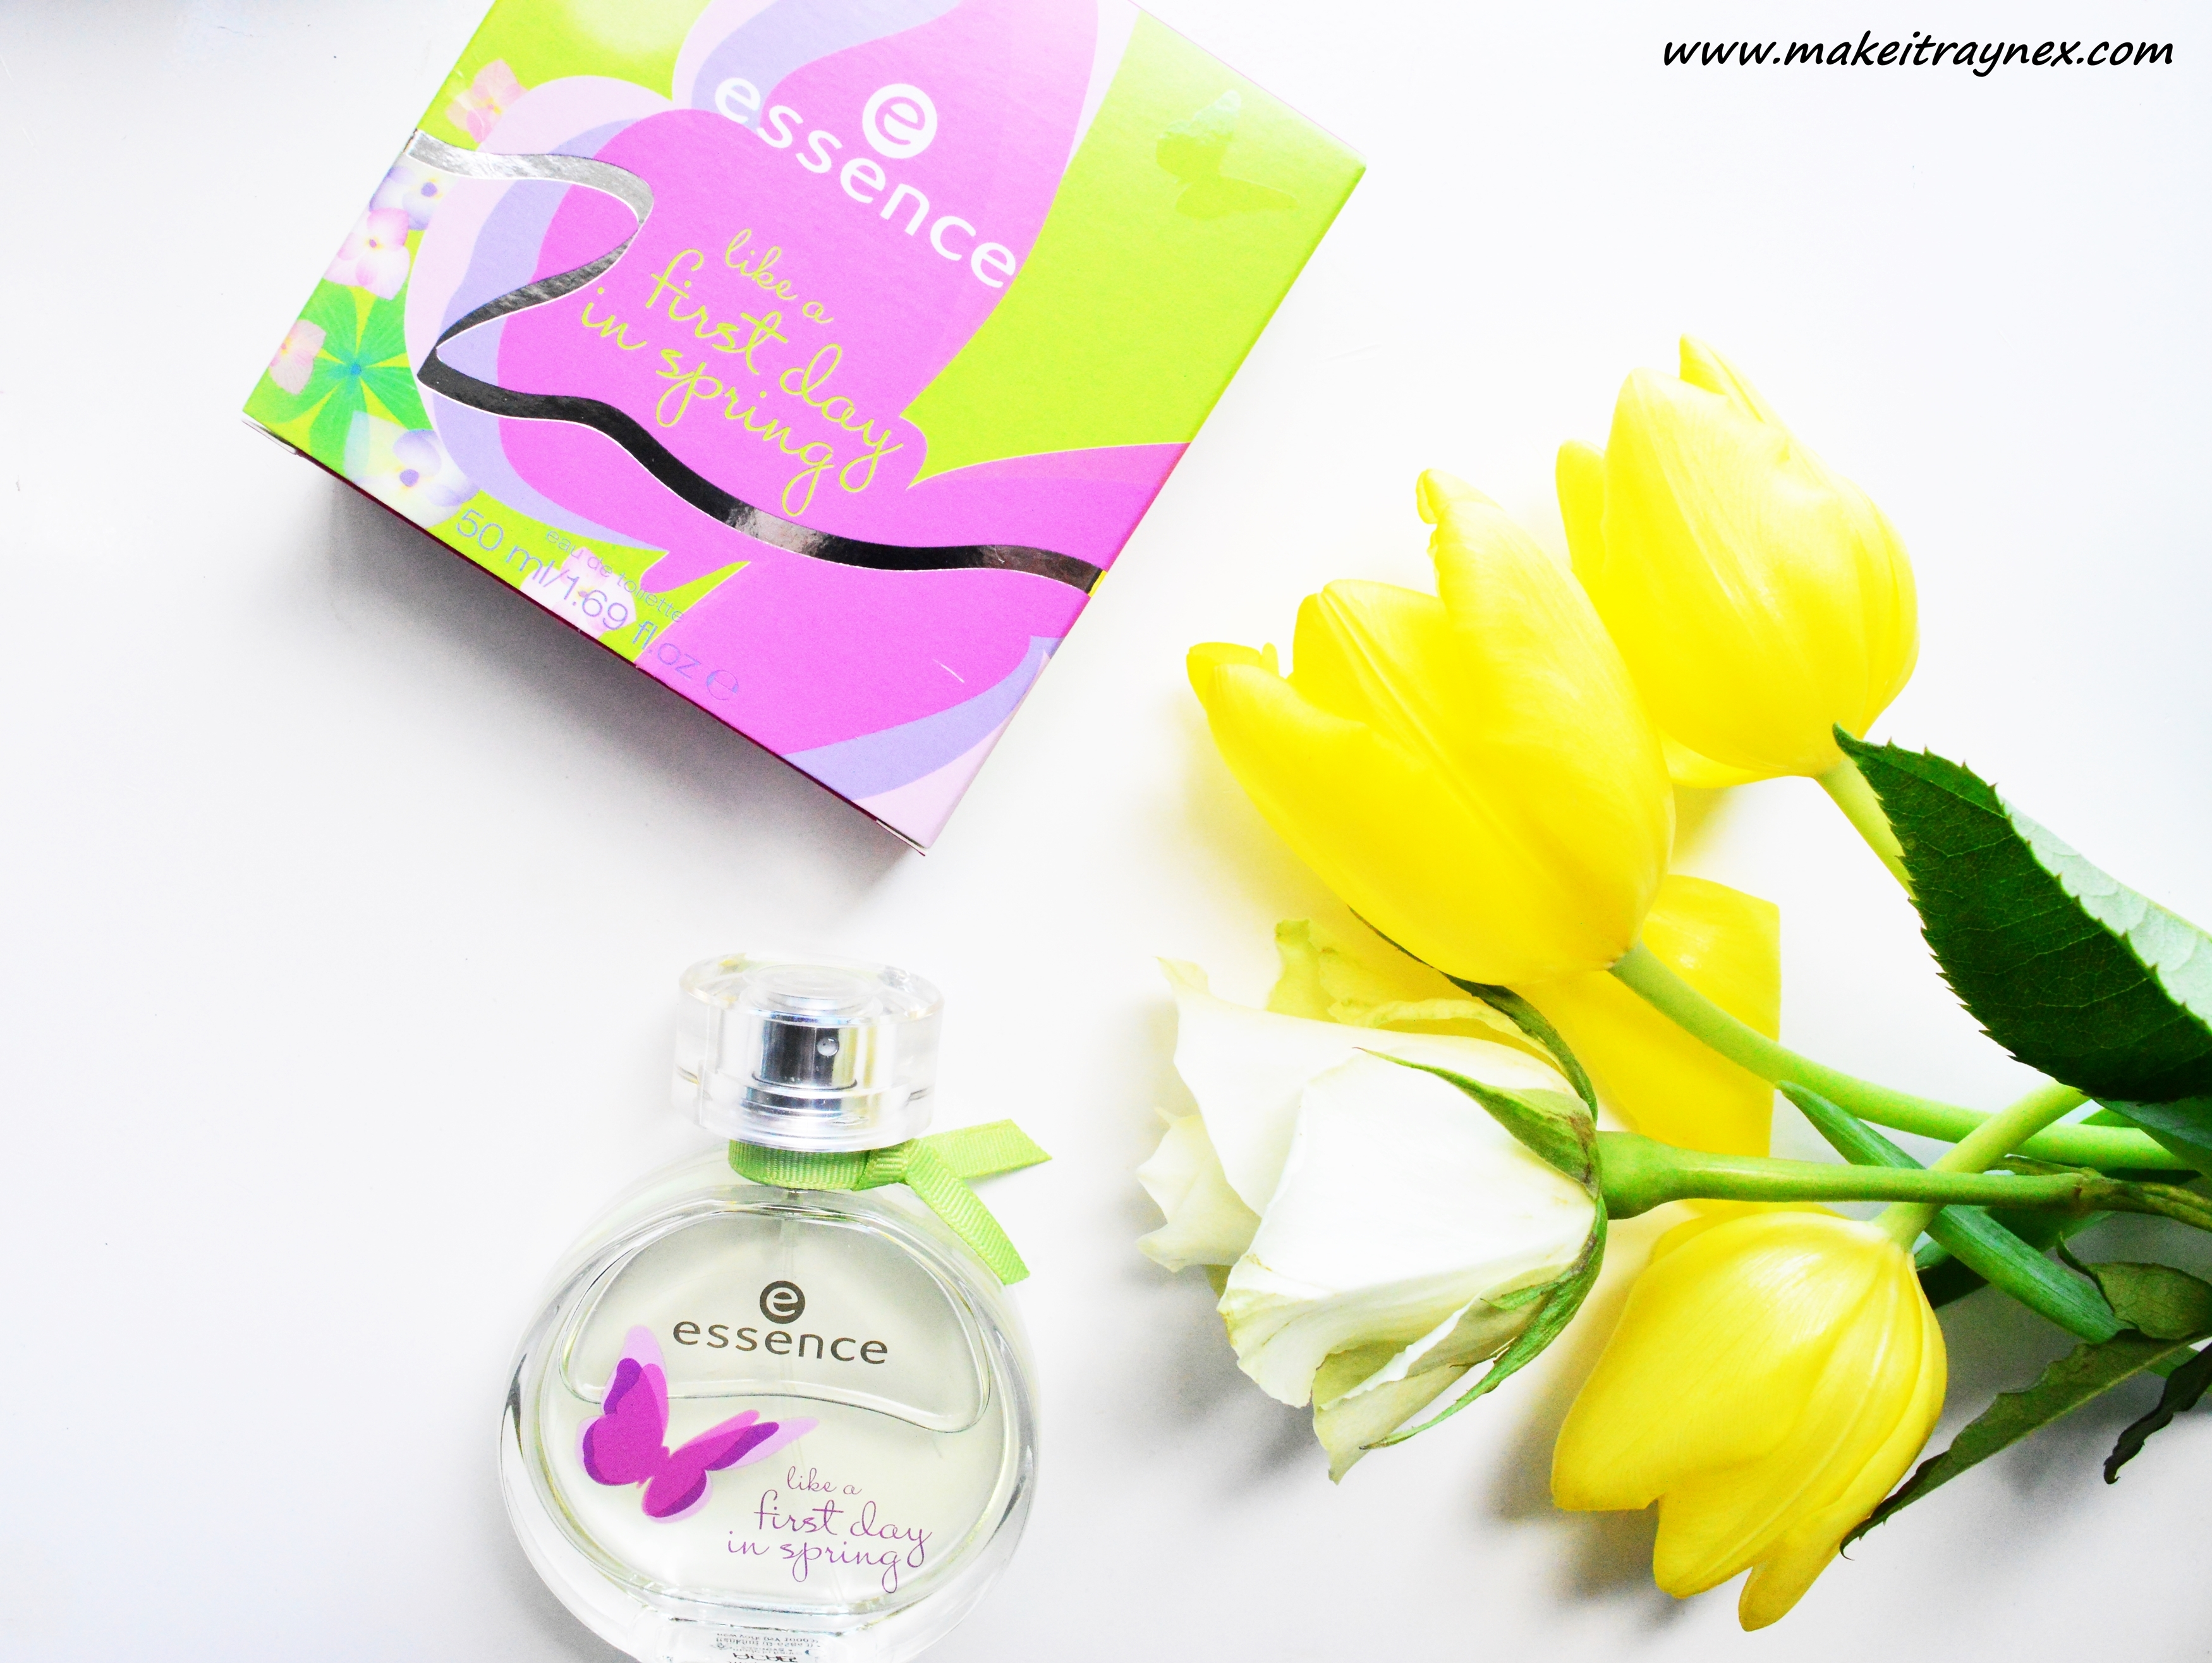 Put some Spring in your step with essence 'like a first day in spring'! {REVIEW}